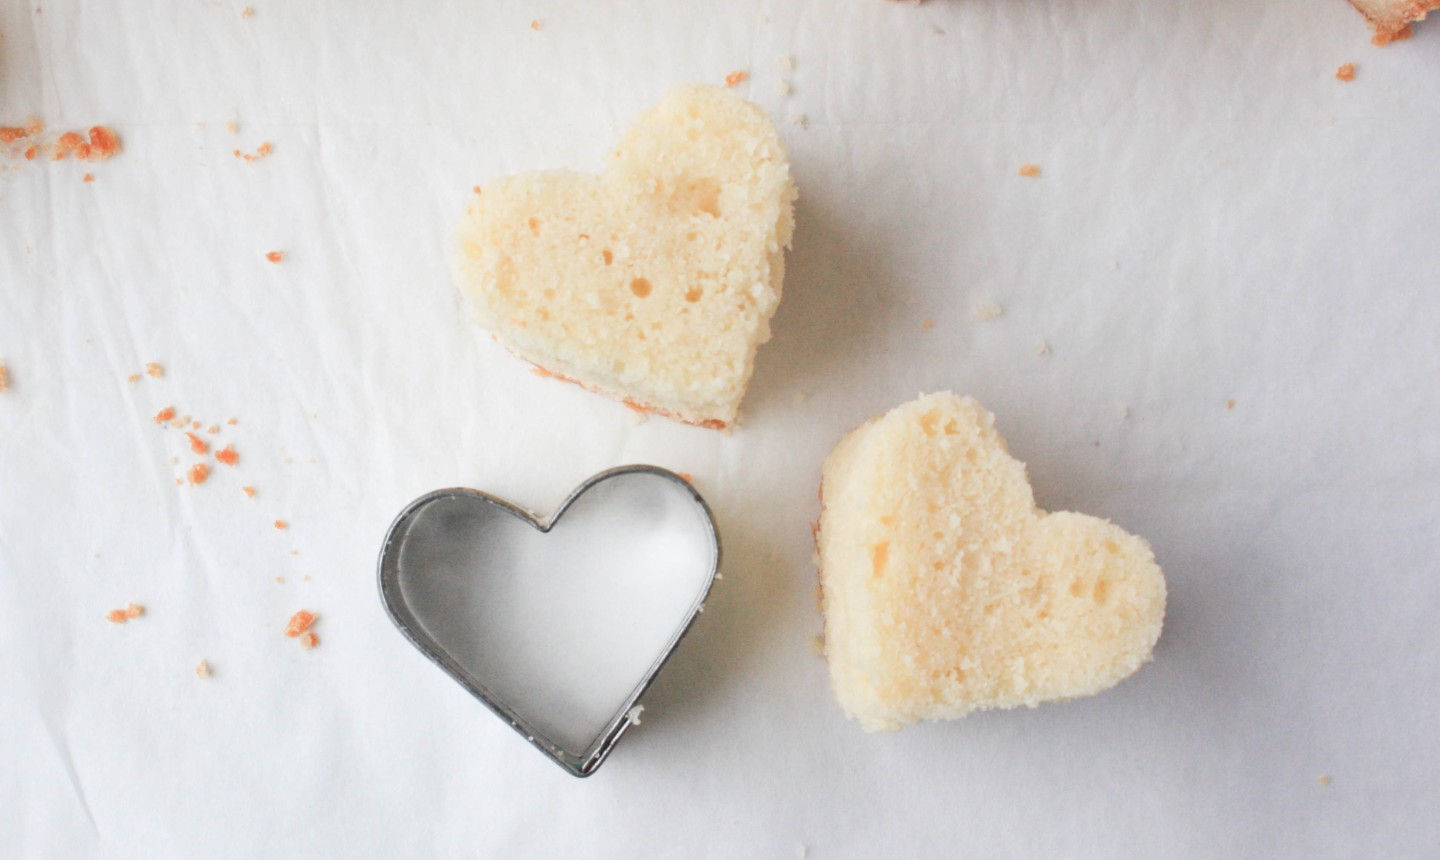 heart-shaped cake piece